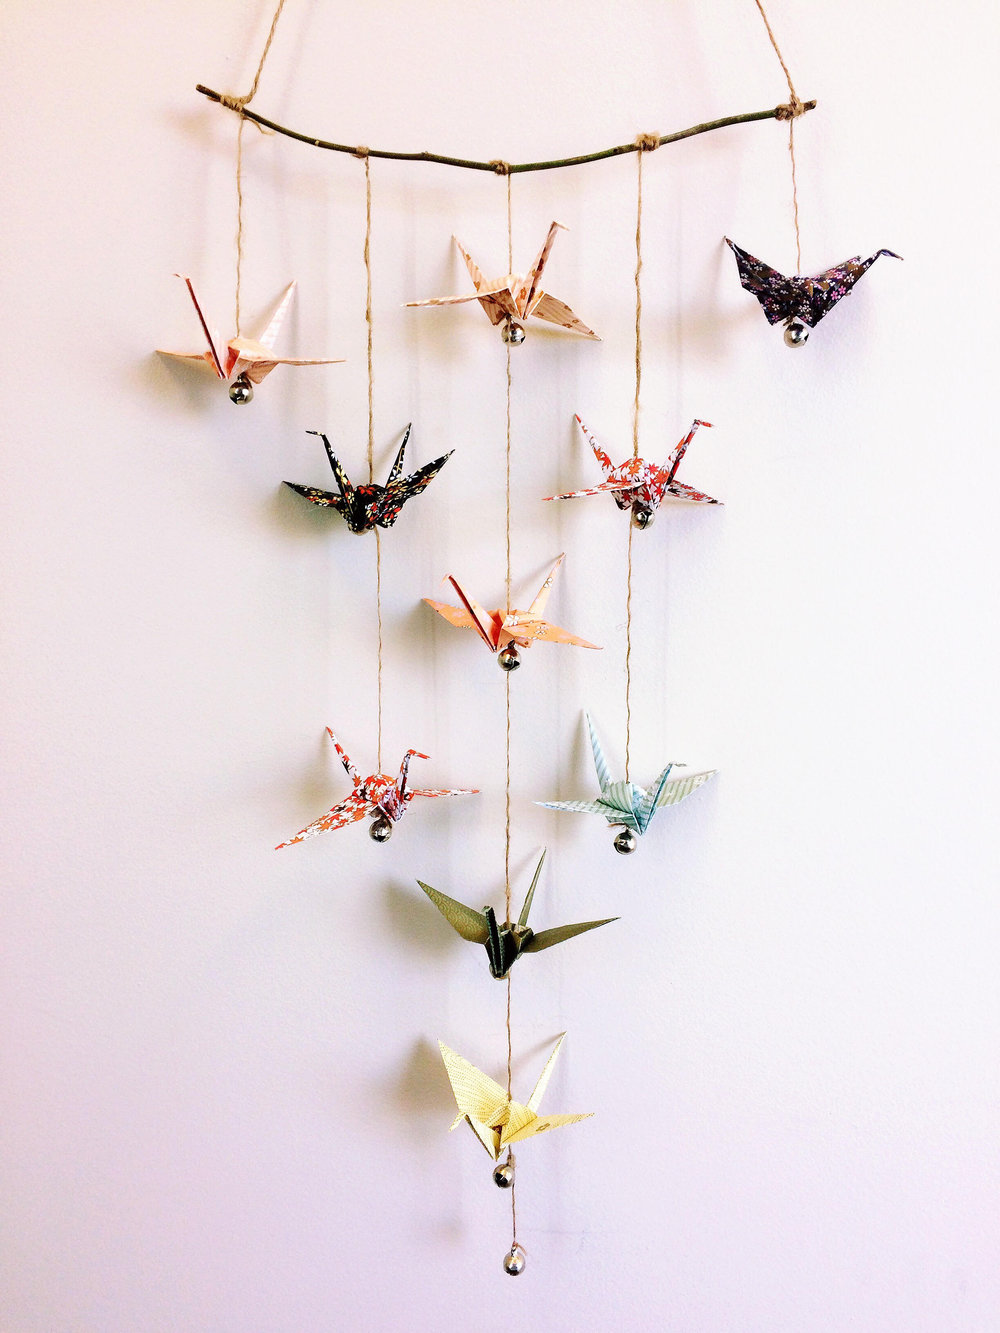 Student Work #22: One Thousand Cranes